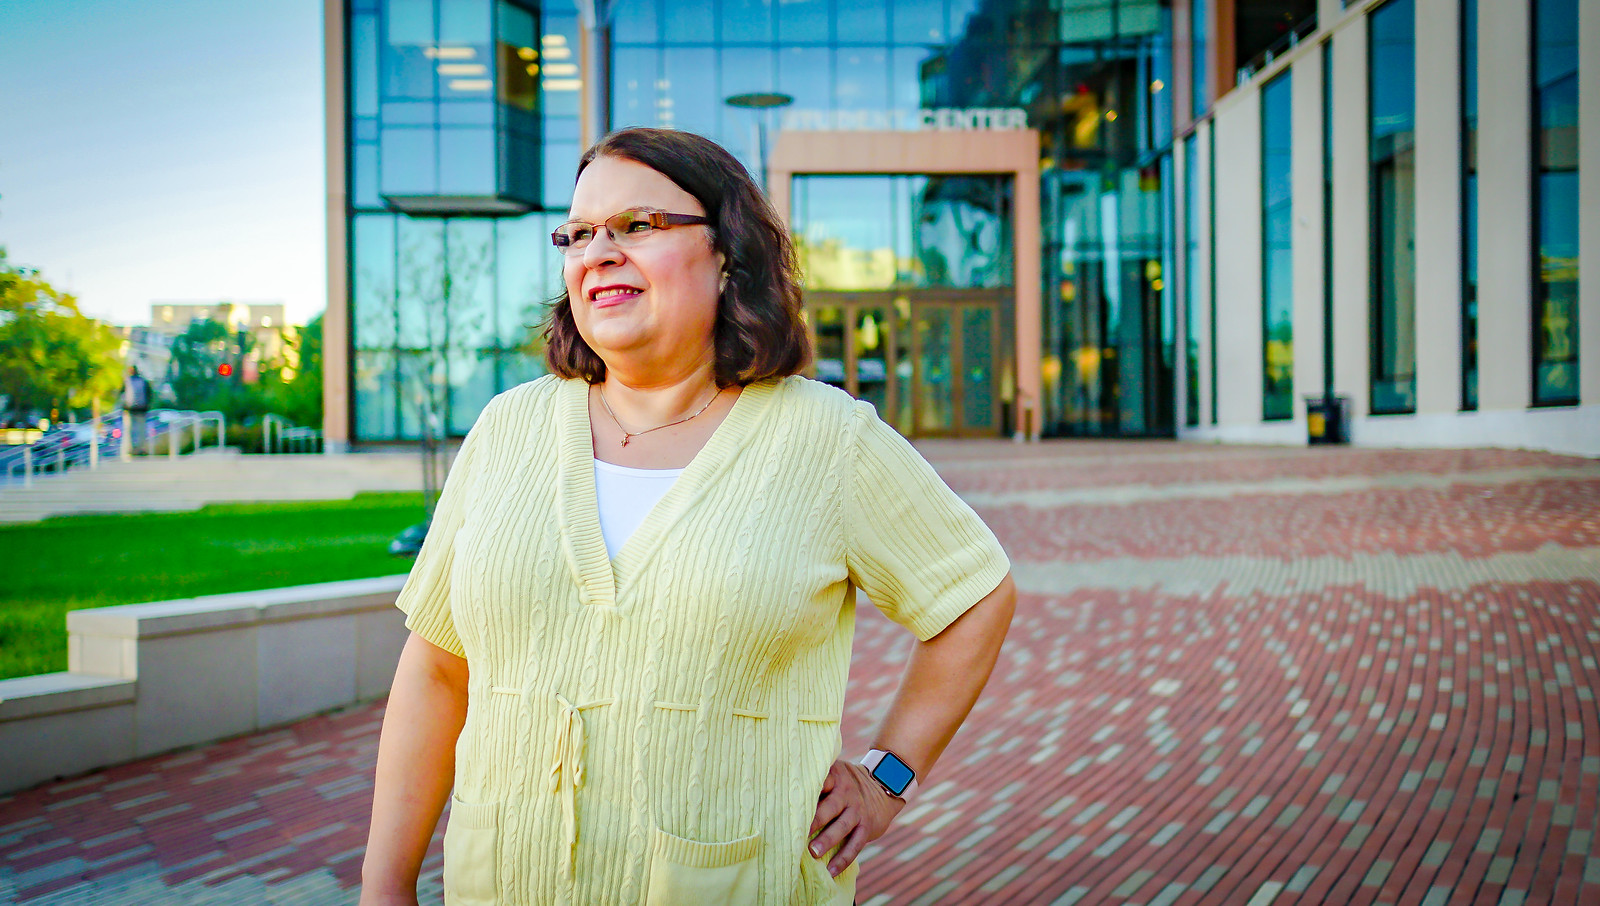 Thanks for Publishing my Photograph, Washingtonian, and Thanks Monika Nemeth for Making History as the First Transgender Person to be Elected to a City Position in DC